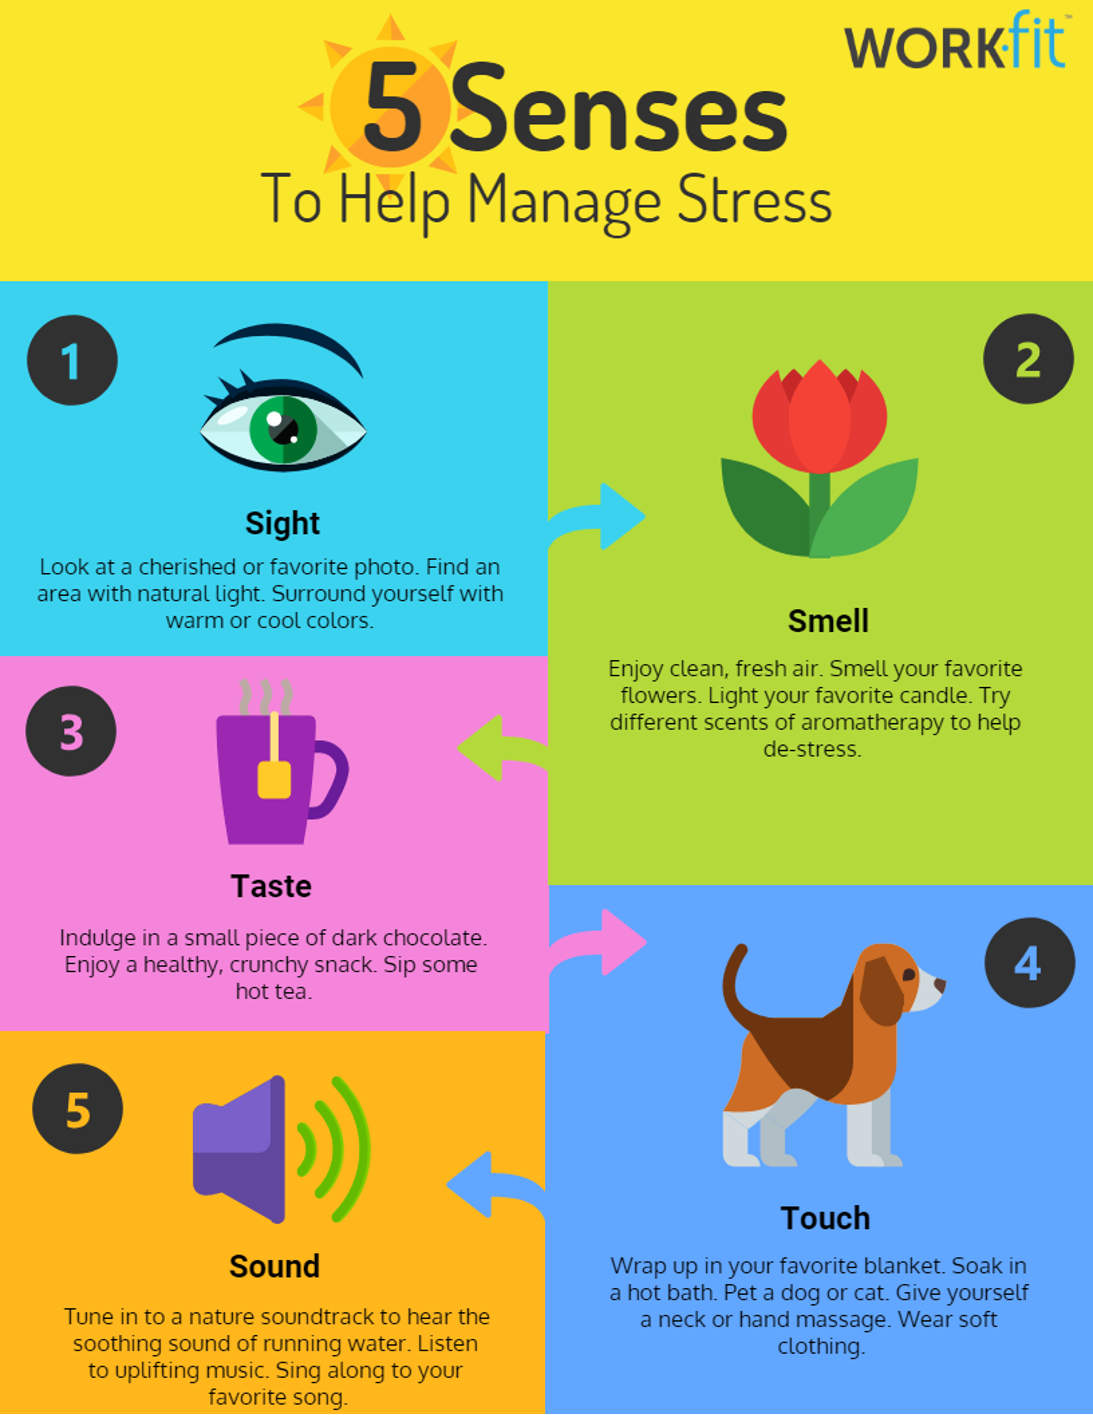 Using the 5 senses to fight stress is something you can do every day